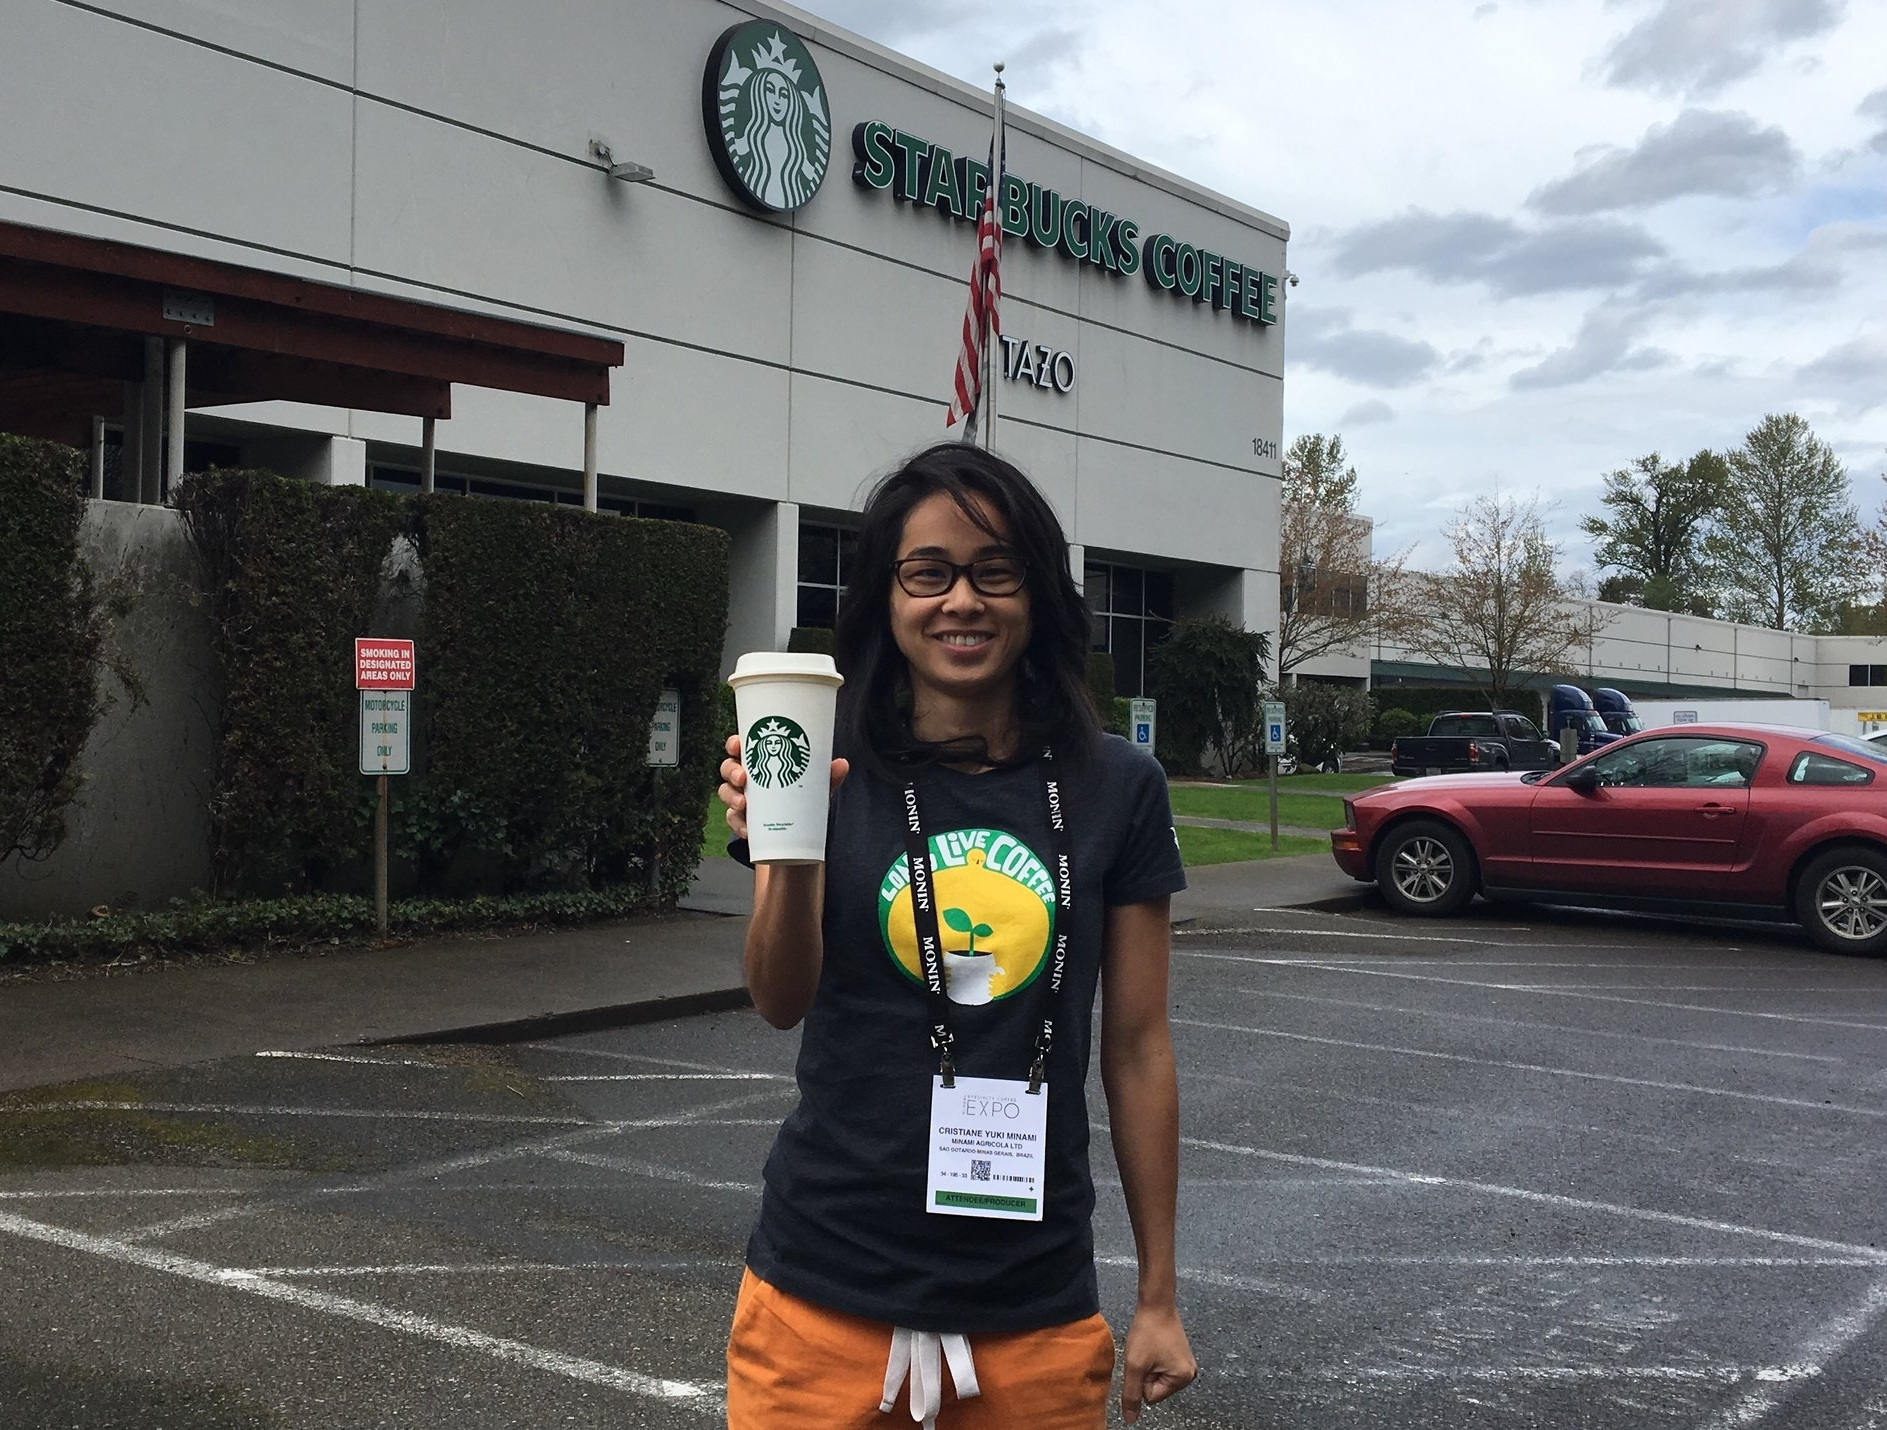 Visit to Starbucks Kent Flexible Plant Tour during 2017 SCA coffee expo